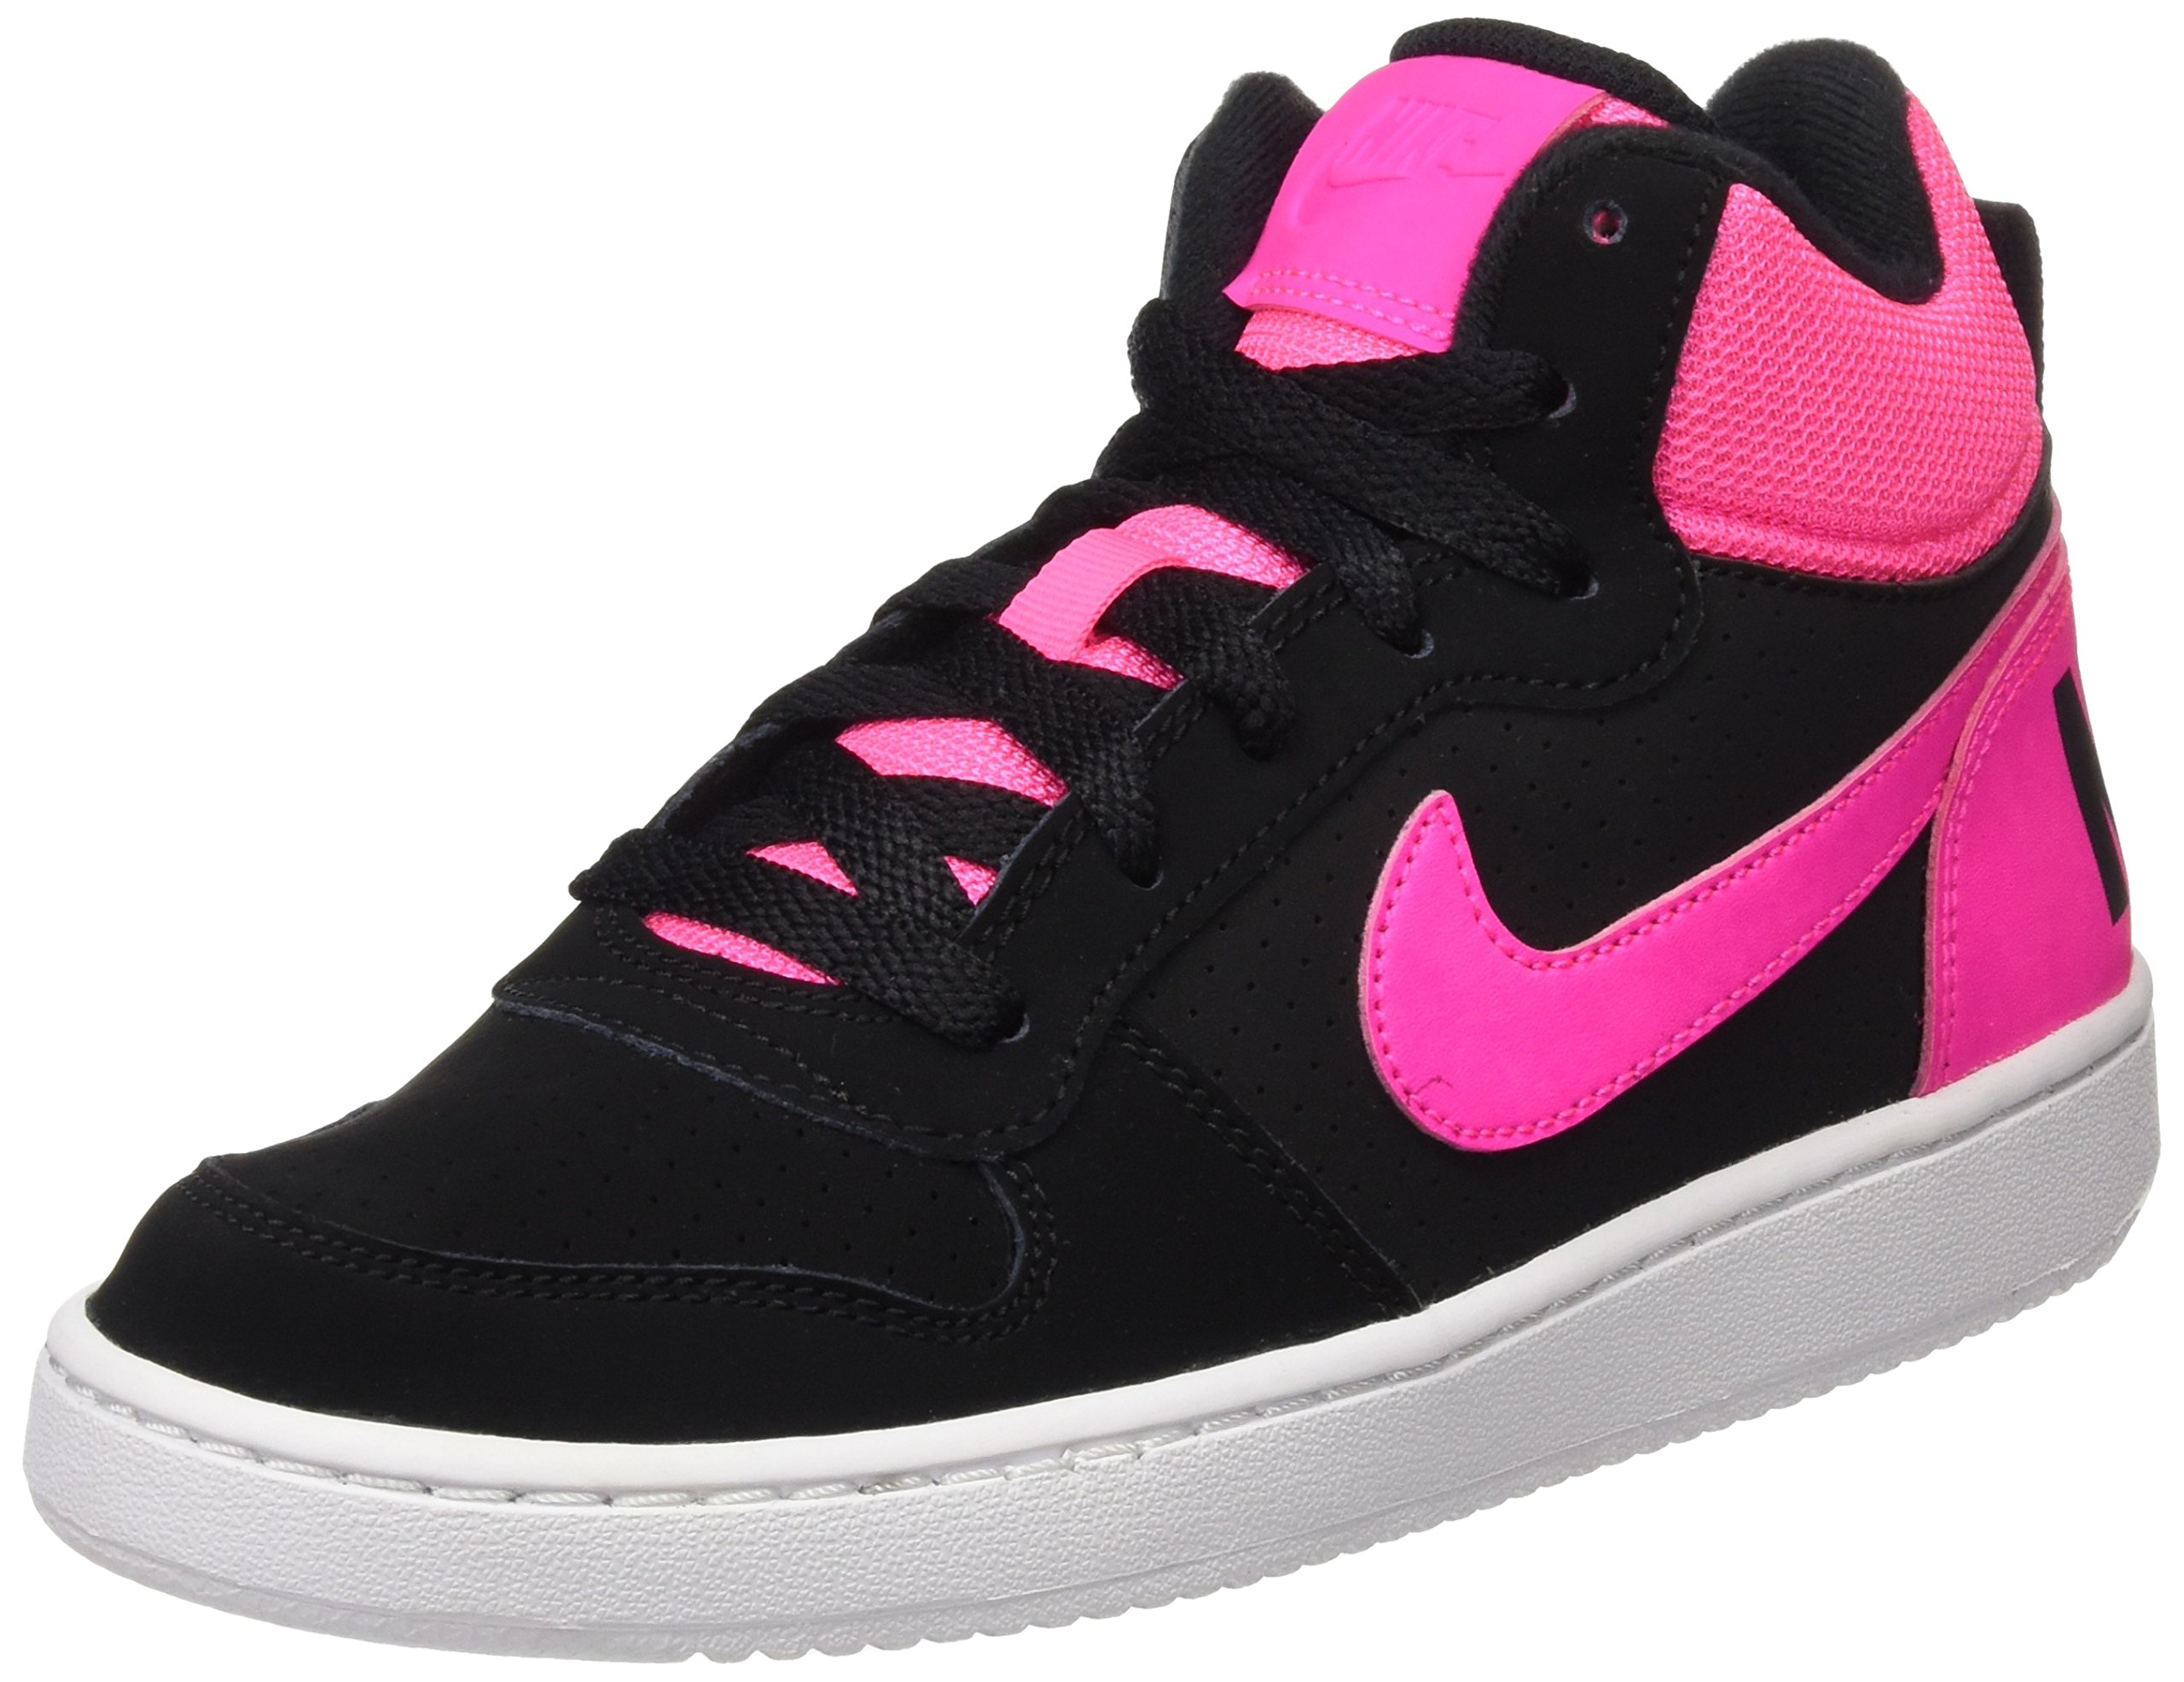 Nike - Court Borough Mid GS - 845107006 - Color: Black-Pink-White - Size: 5.0